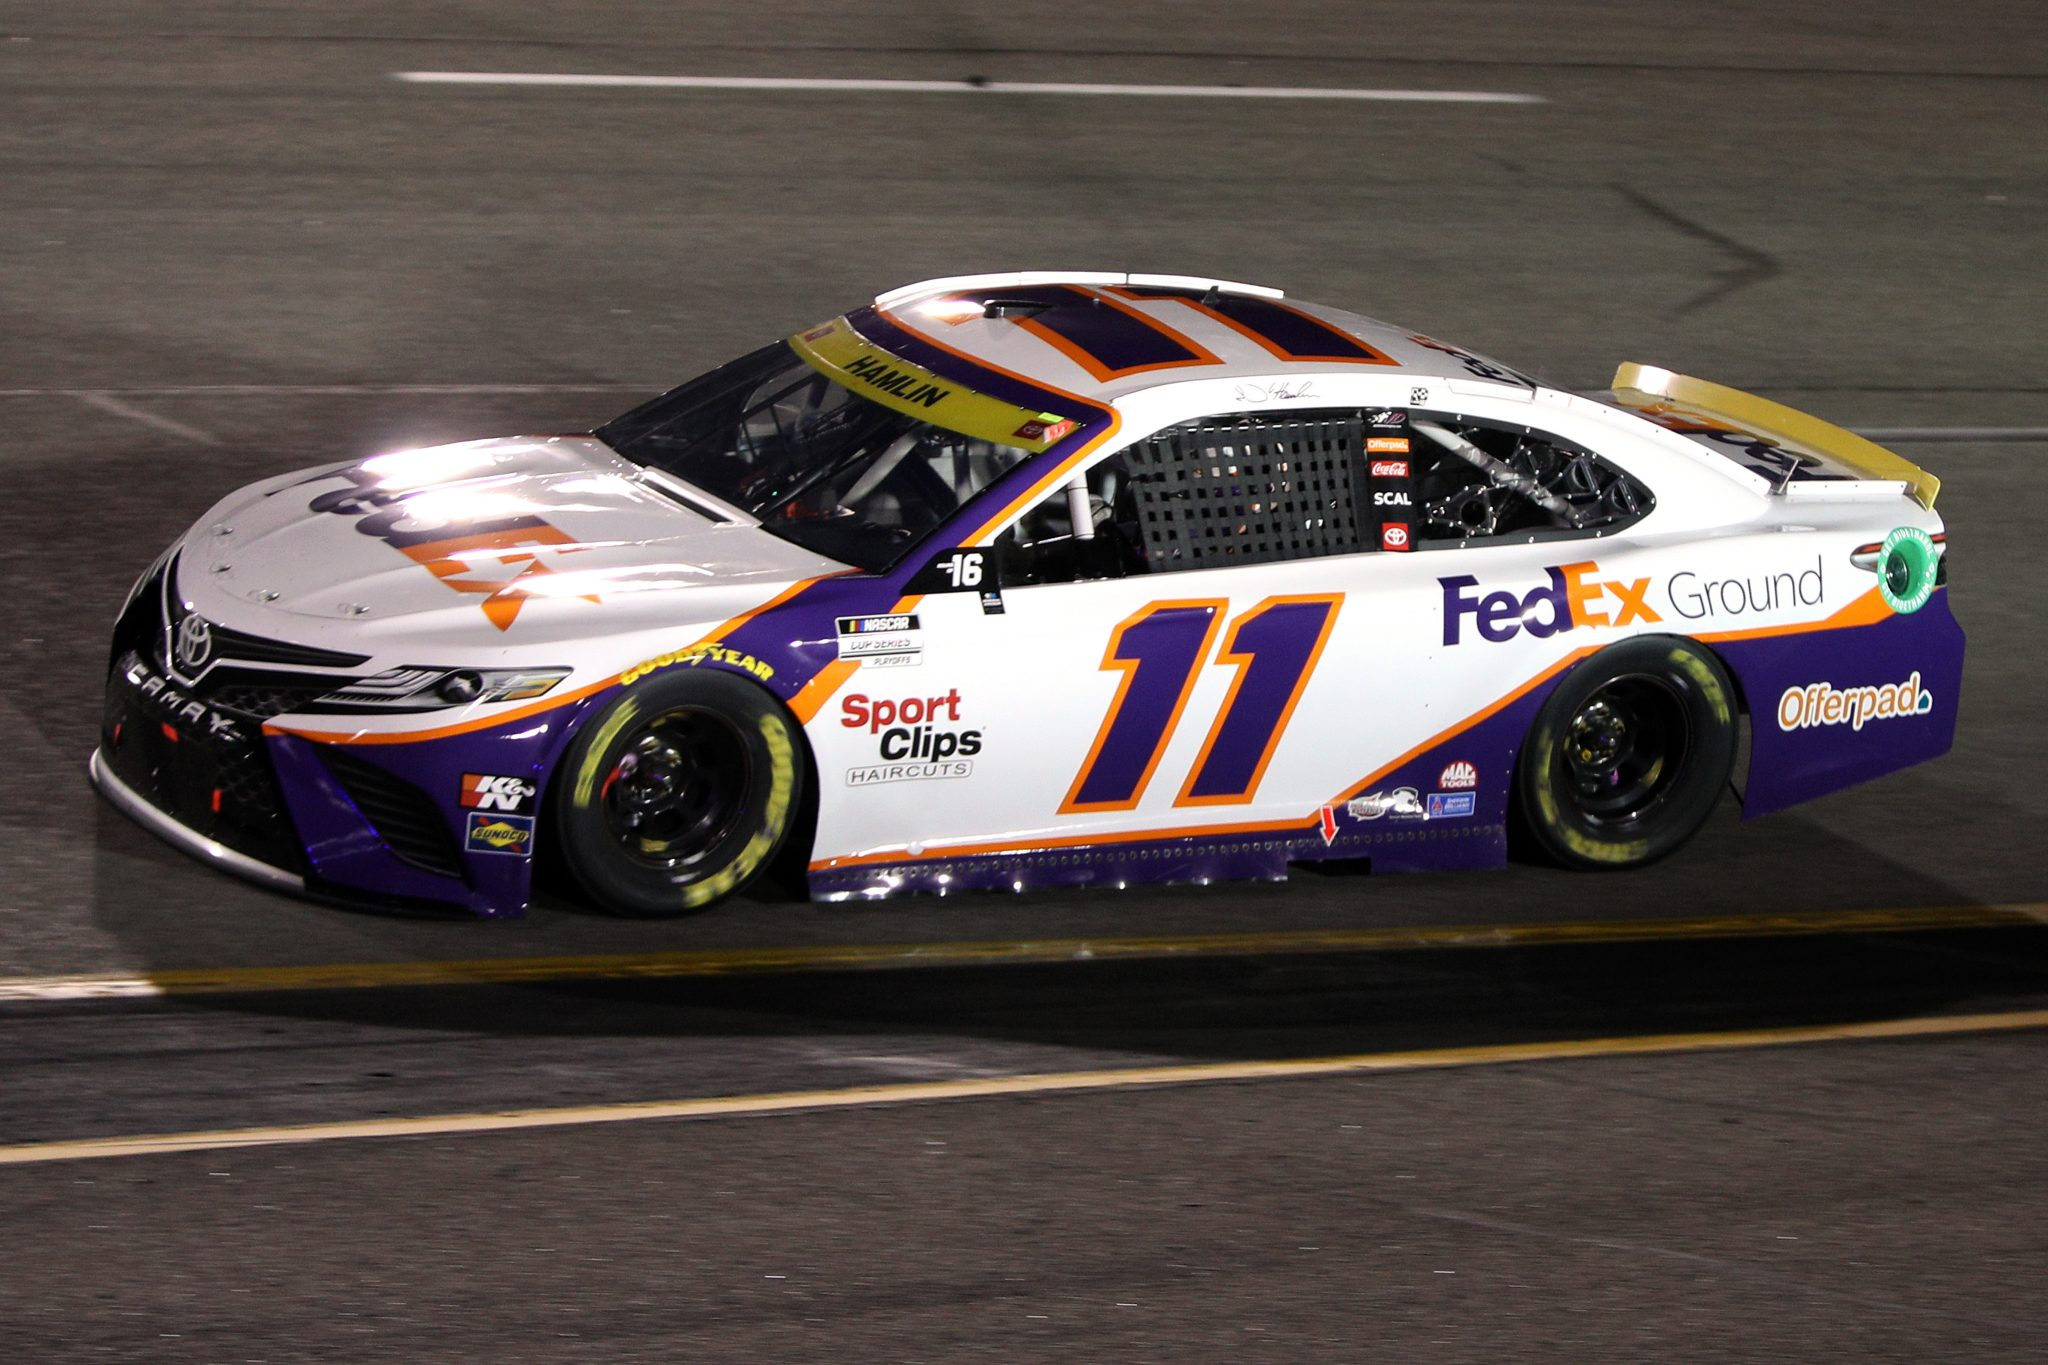 RICHMOND, VIRGINIA - SEPTEMBER 11: Denny Hamlin, driver of the #11 FedEx Ground Toyota, drives during the NASCAR Cup Series Federated Auto Parts 400 Salute to First Responders at Richmond Raceway on September 11, 2021 in Richmond, Virginia. (Photo by Sean Gardner/Getty Images)   Getty Images